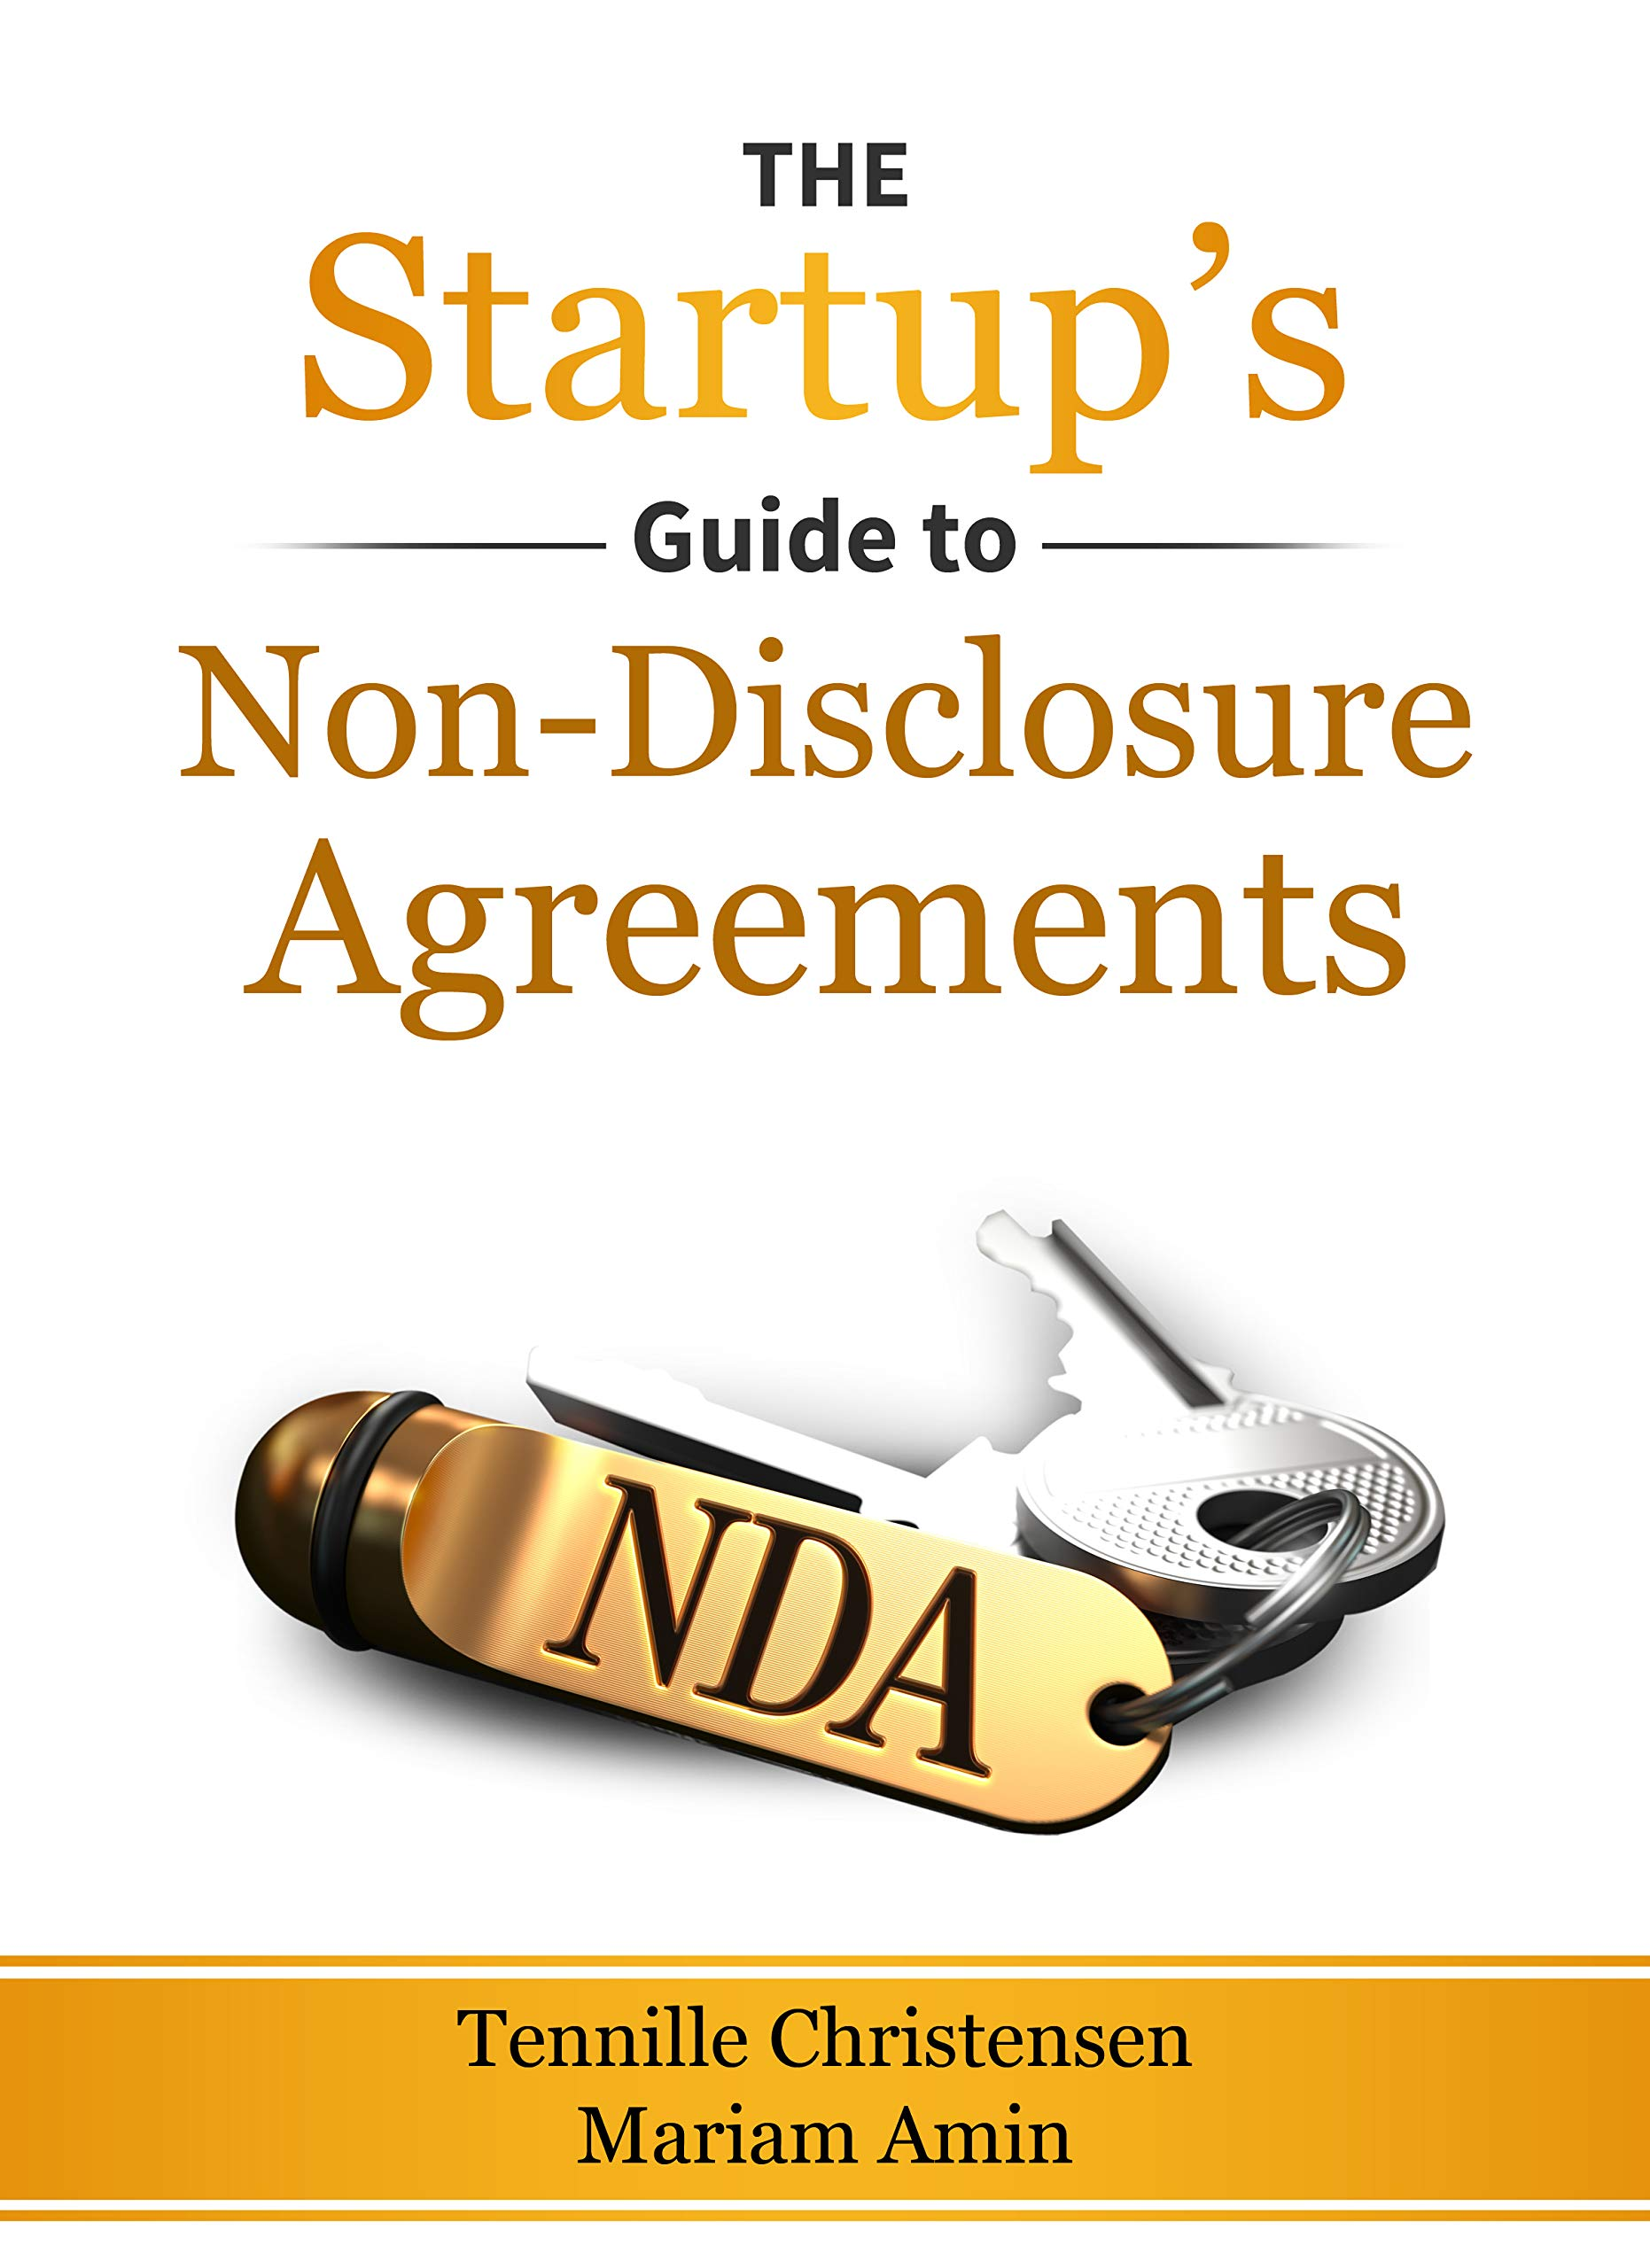 The Startup's Guide to Non-Disclosure Agreements